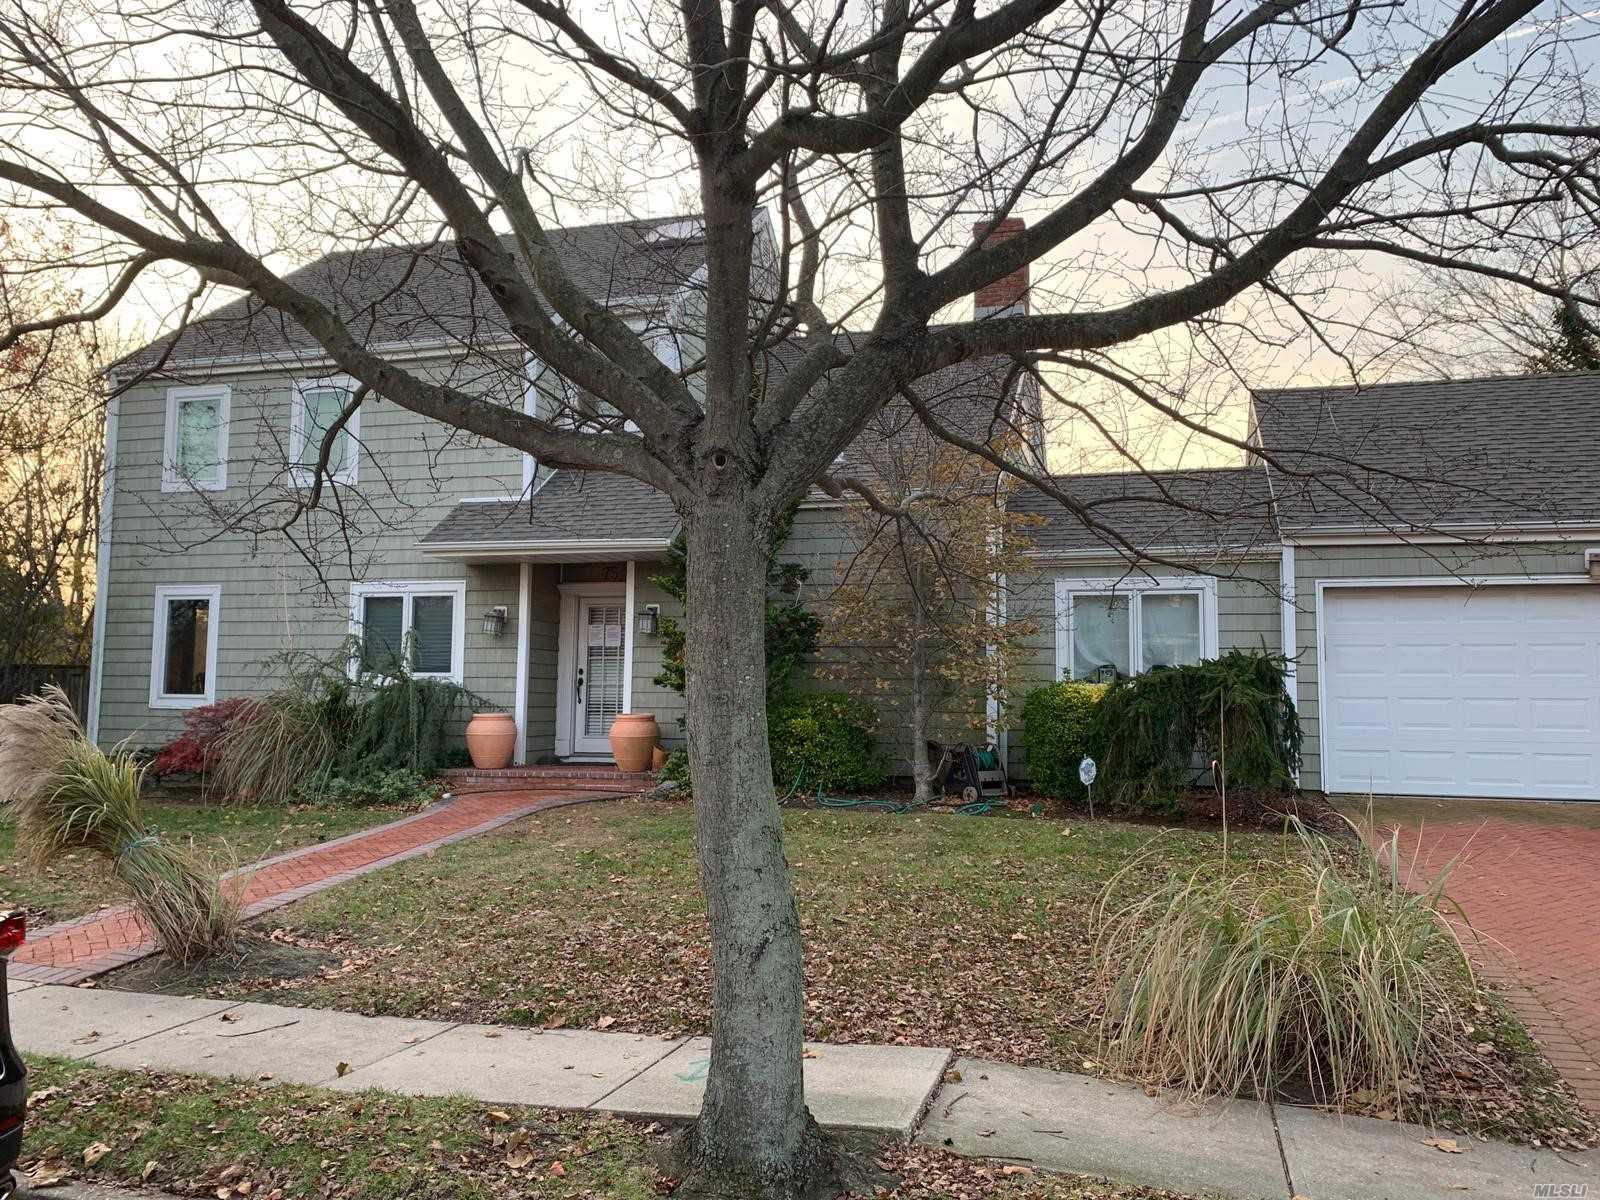 Detached Single Family Colonial With Private Driveway And Attached One Car Garage Located In Hempstead Township. Property Features Partial Attic, Three Bedrooms, Two Full Bathrooms, And One Half Bathroom.